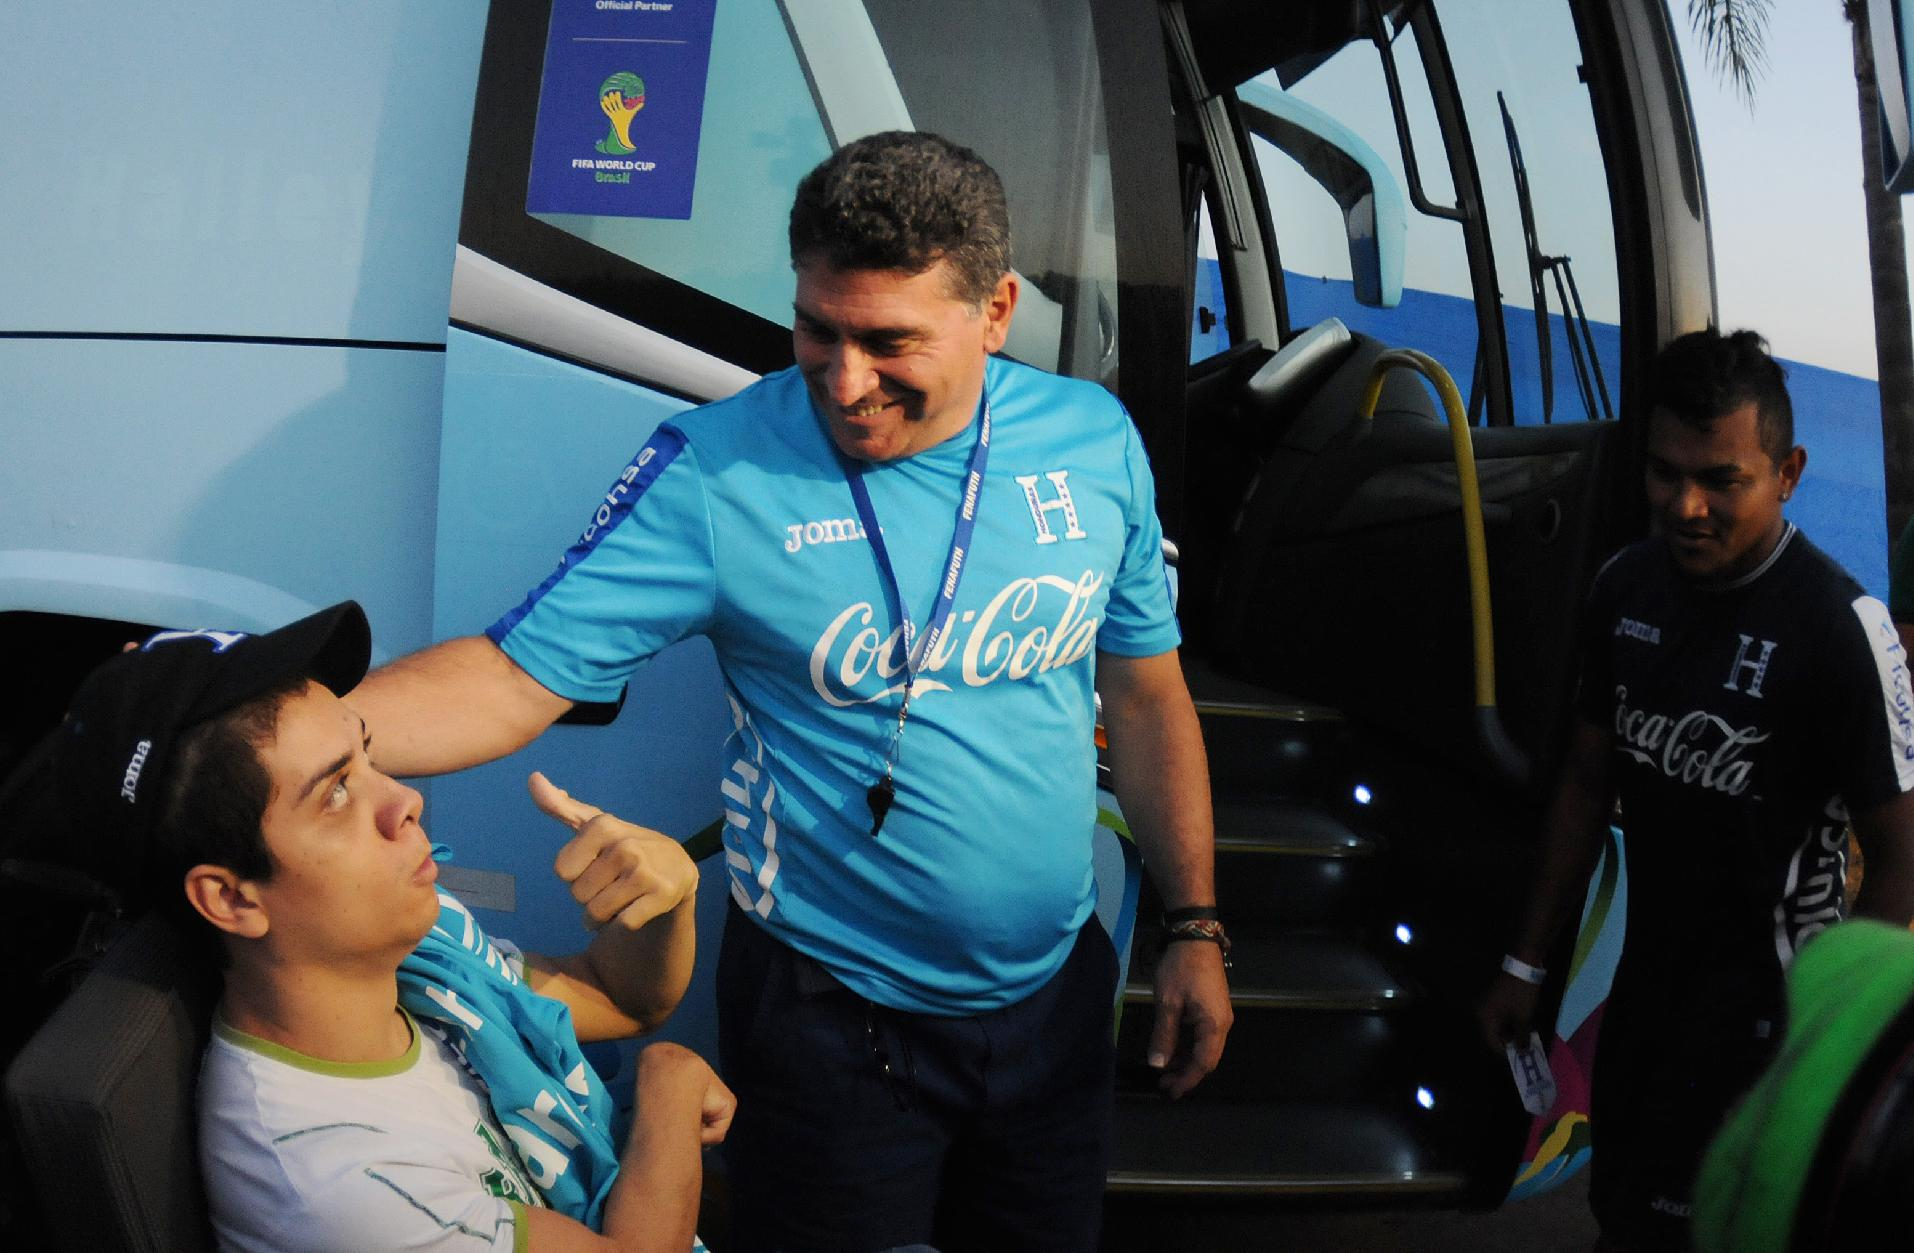 Honduras'  head coach Luis Fernando Suarez greets a child with disabilities before a training session of the Honduran national soccer team, in Porto Feliz, Brazil, Sunday, June 22, 2014. Languishing in bottom spot in Group E after two defeats, Honduras has only a very slim chance of qualifying for the knockout stages of the World Cup